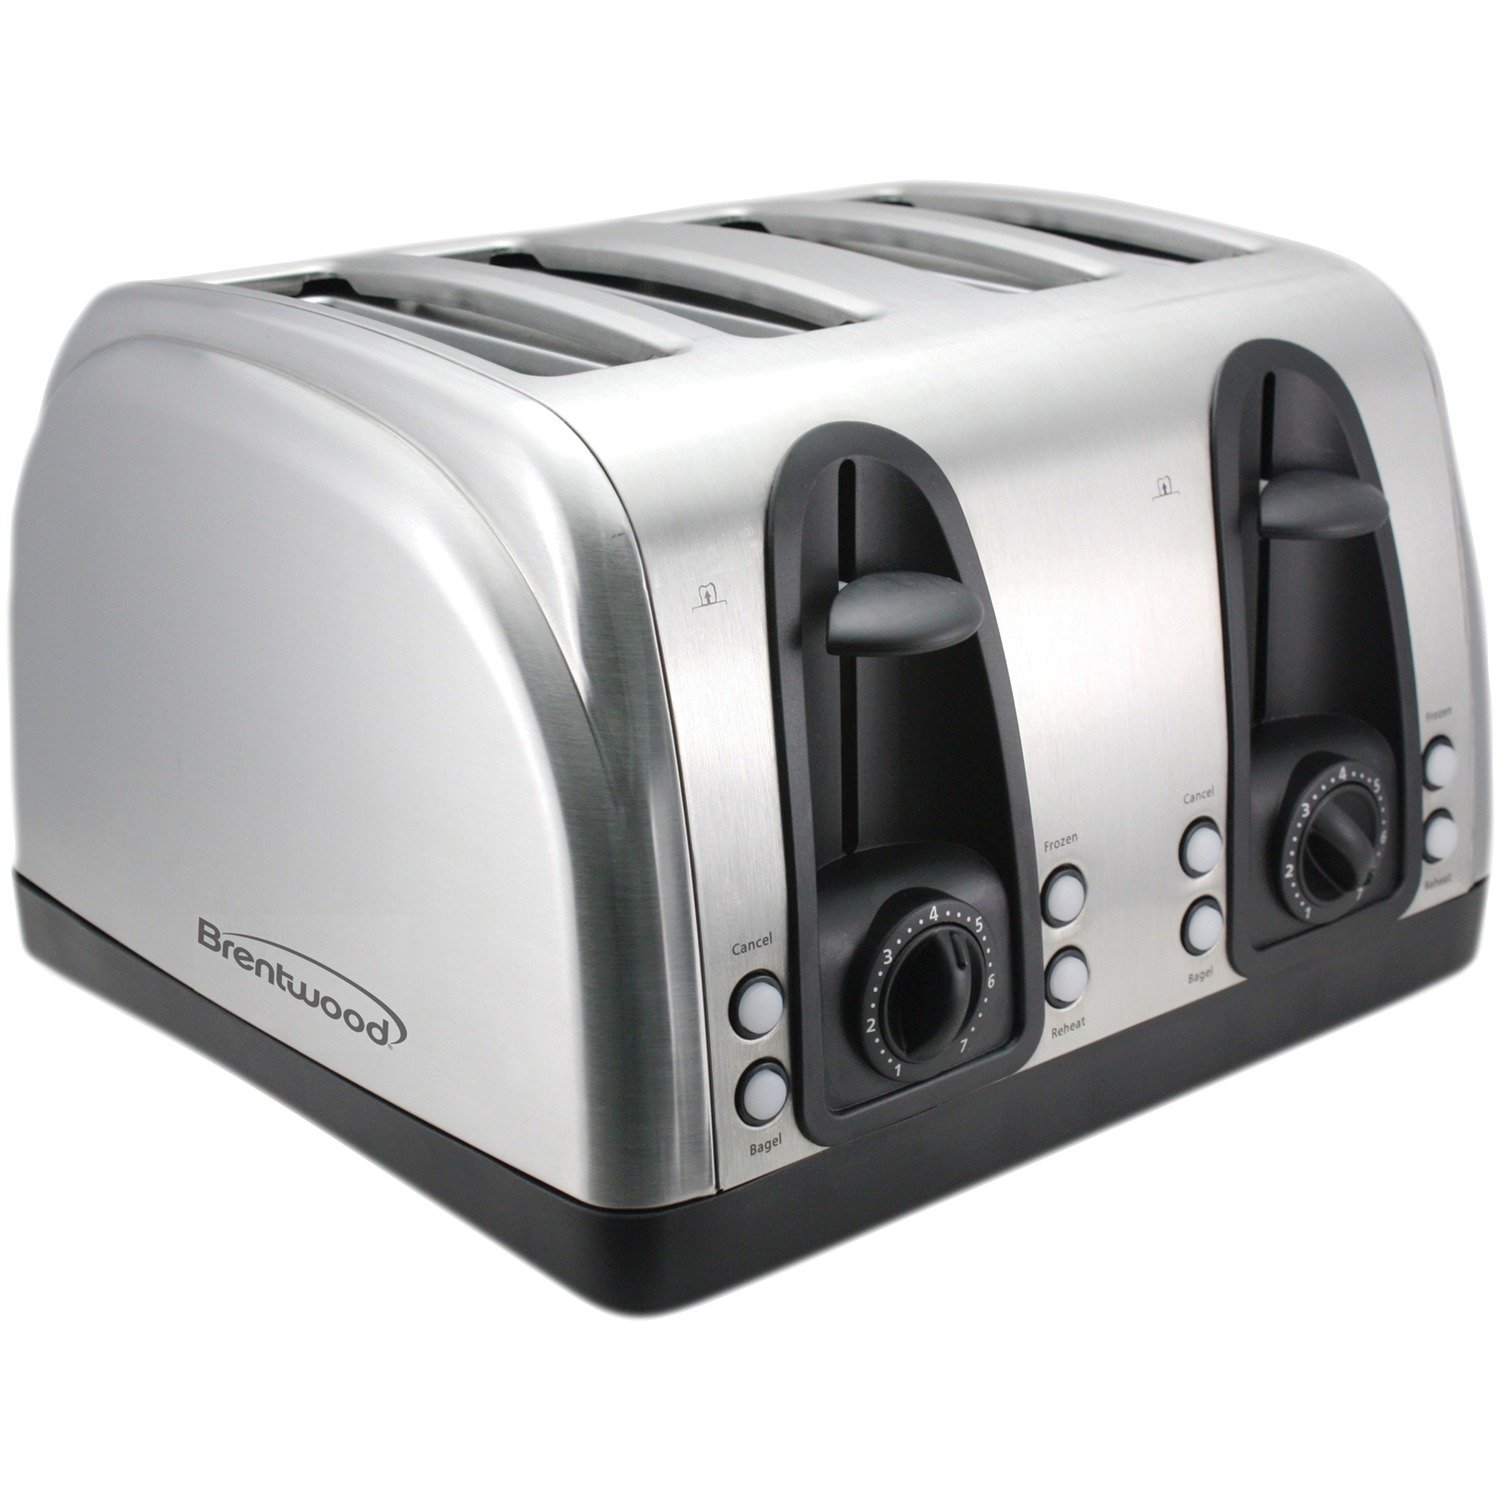 Brentwood TS-445S Toaster Extra Wide Slot, 4 slice, Stainless Steel